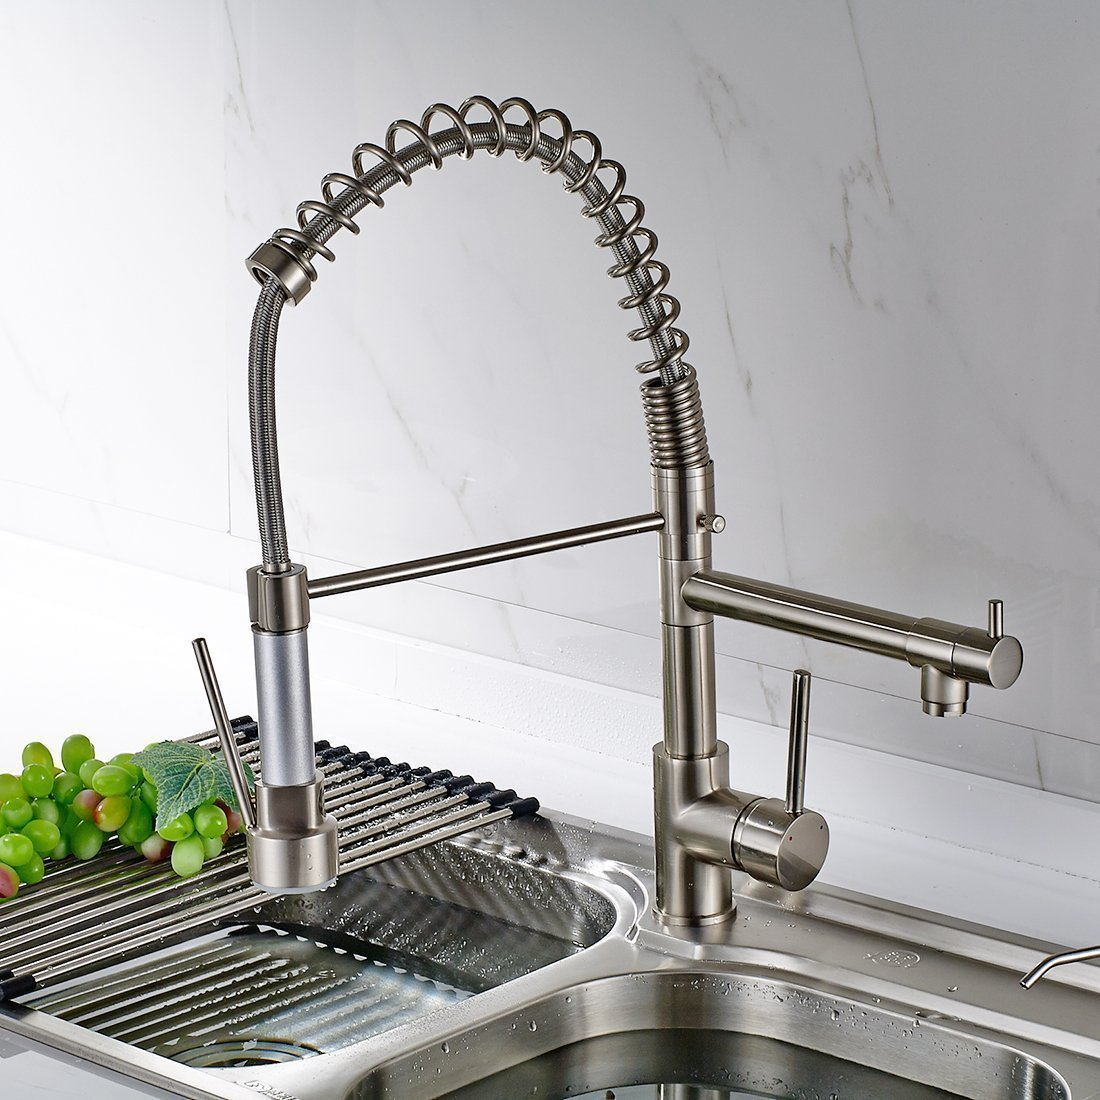 industrial kitchen faucets sticky tiles for floor solid brass spring faucet - polished nickel finish